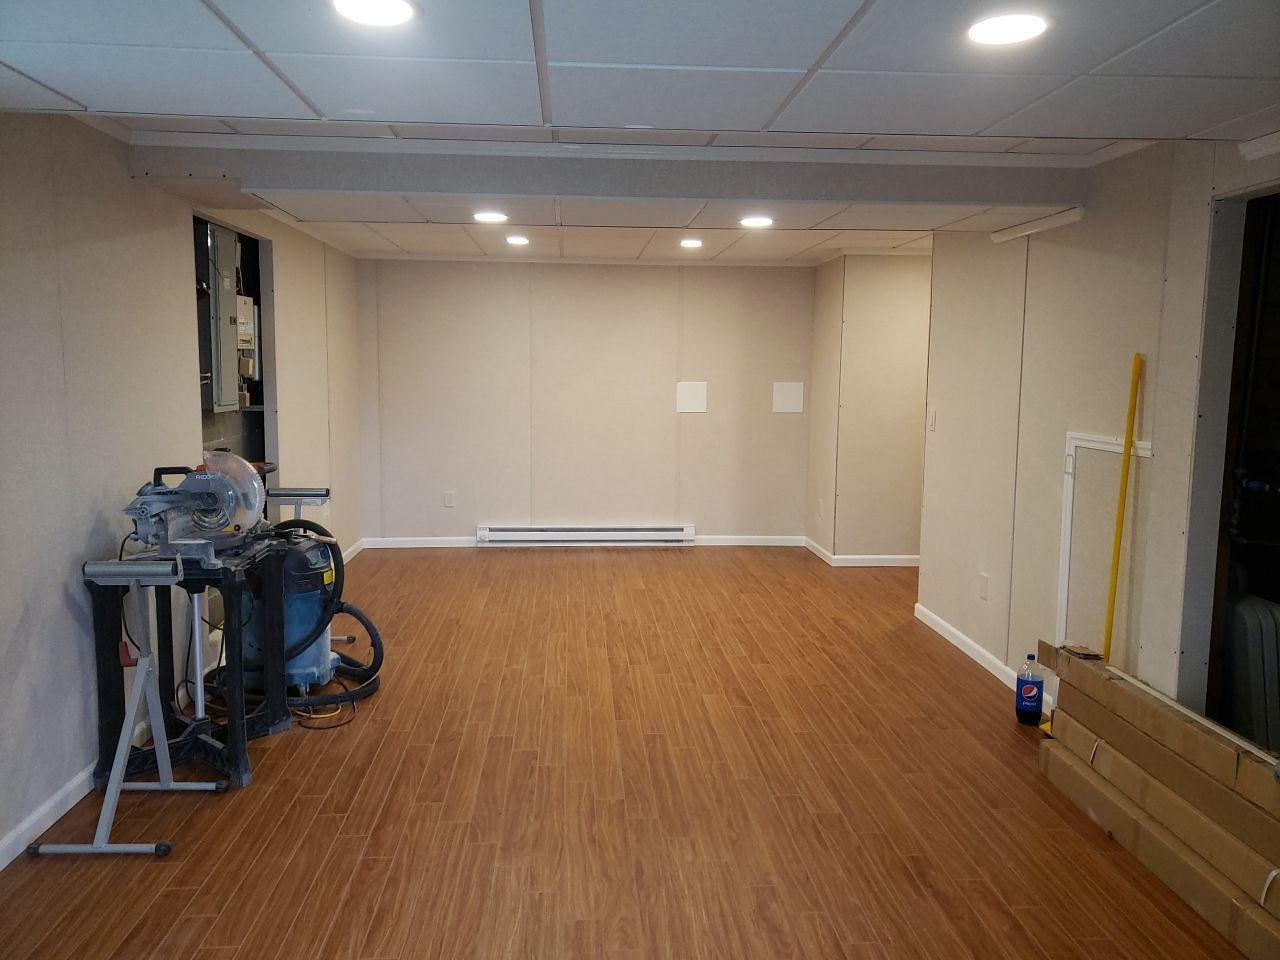 Awesome Basement Transformation in Monroeville, PA! - After Photo